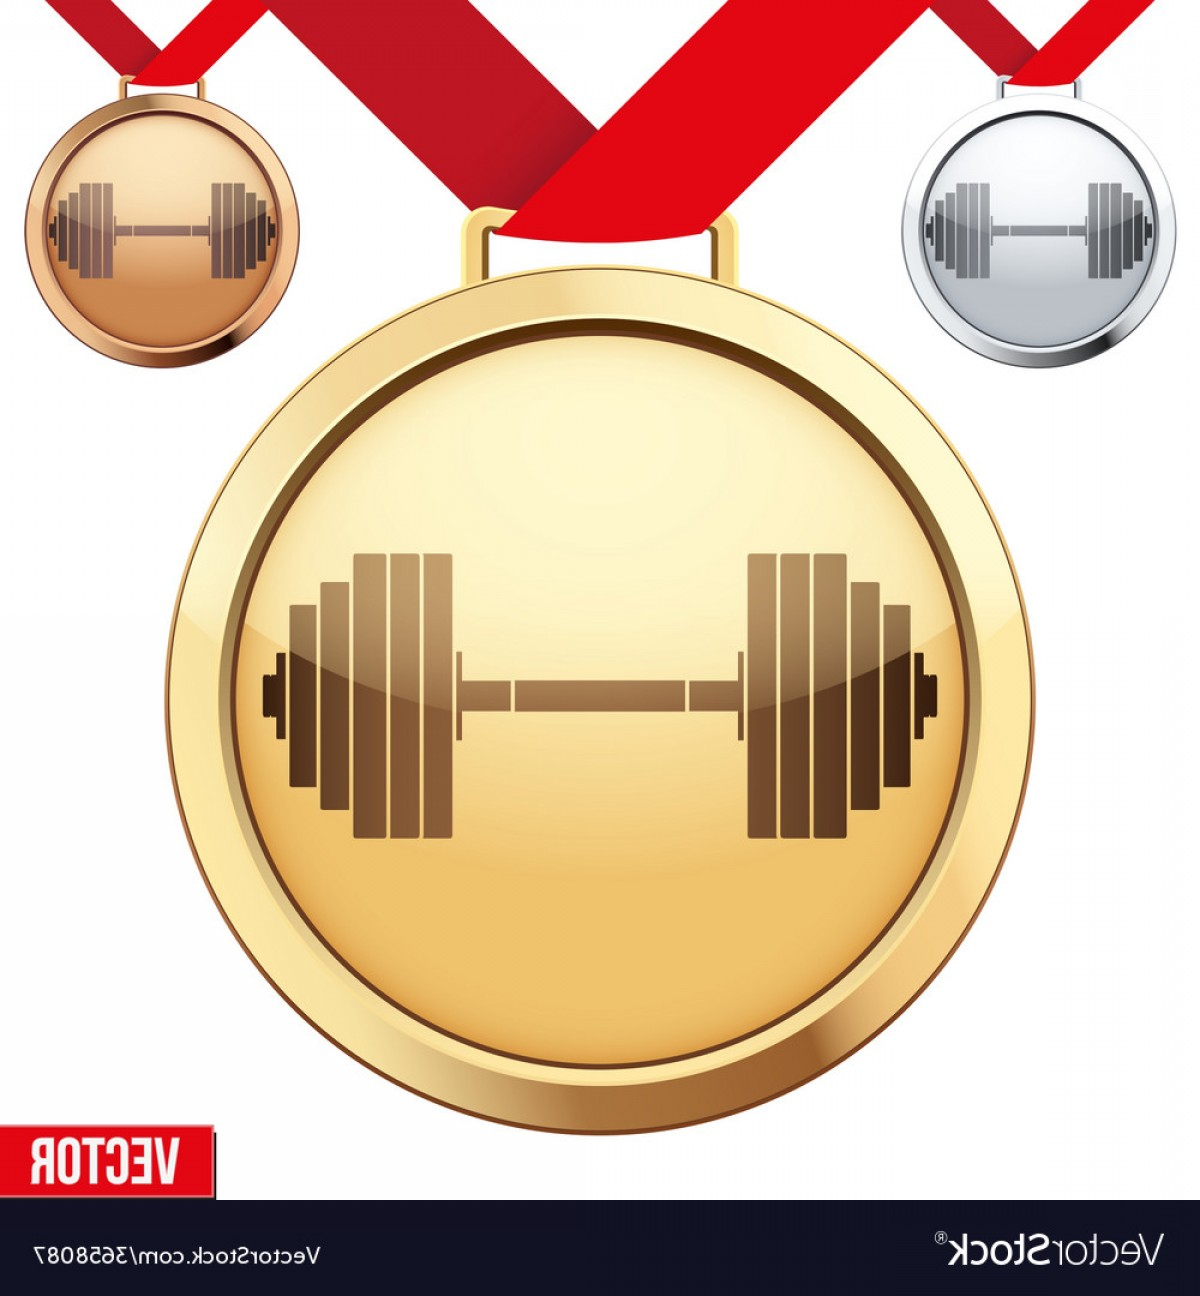 Gold Gym Vector: Gold Medal With The Symbol Of A Gym Inside Vector